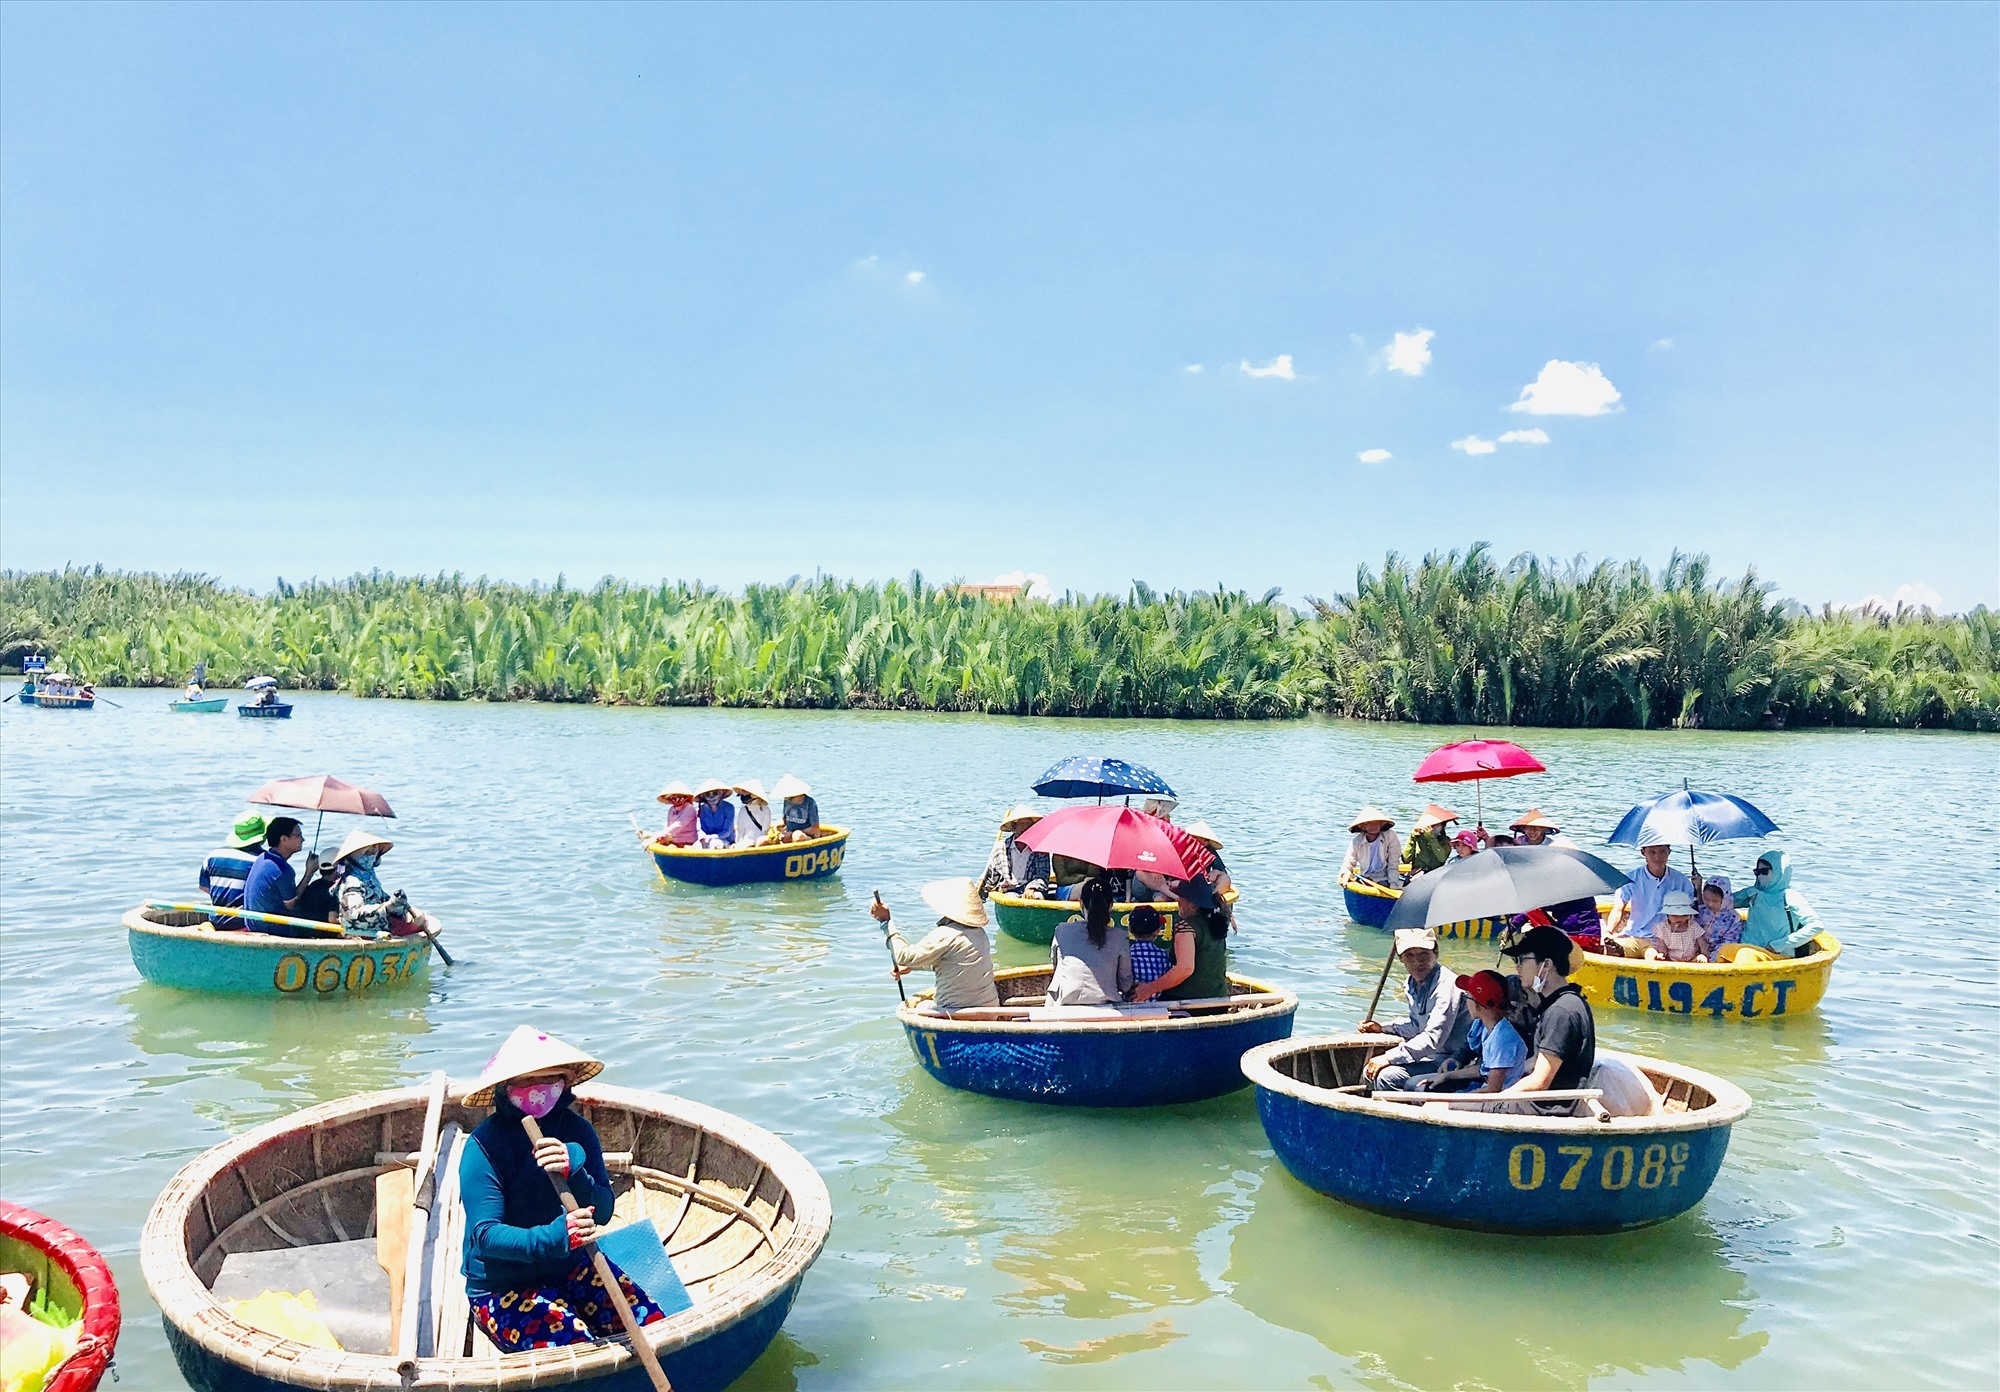 Visitors to Hoi An